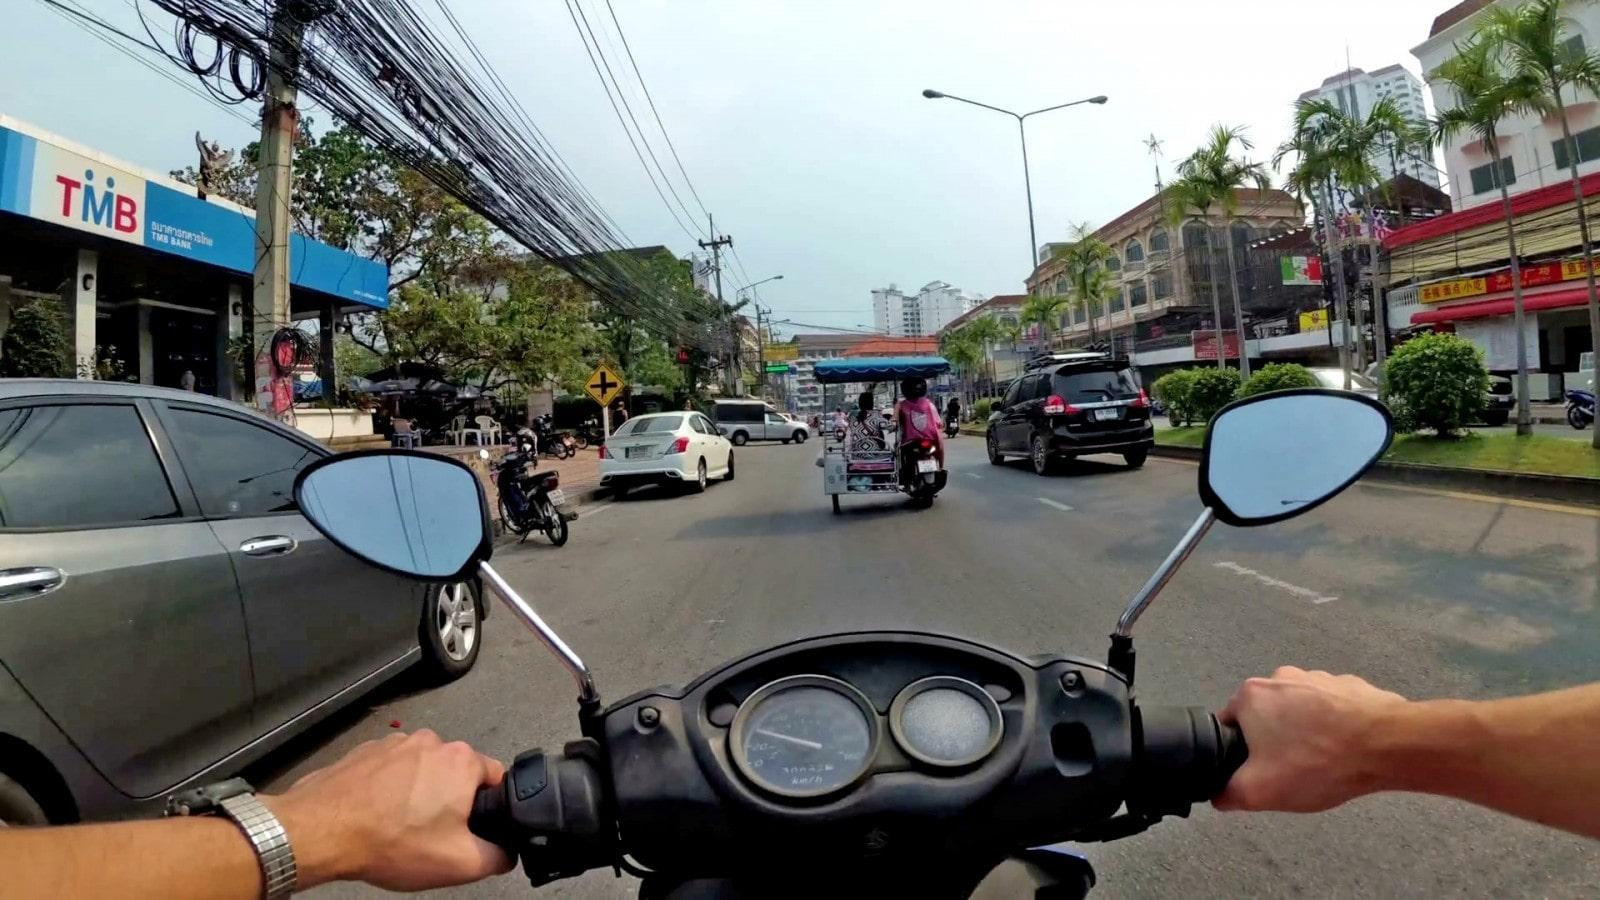 Top 10 tips for riding a motorbike in Thailand (2019) | The Thaiger